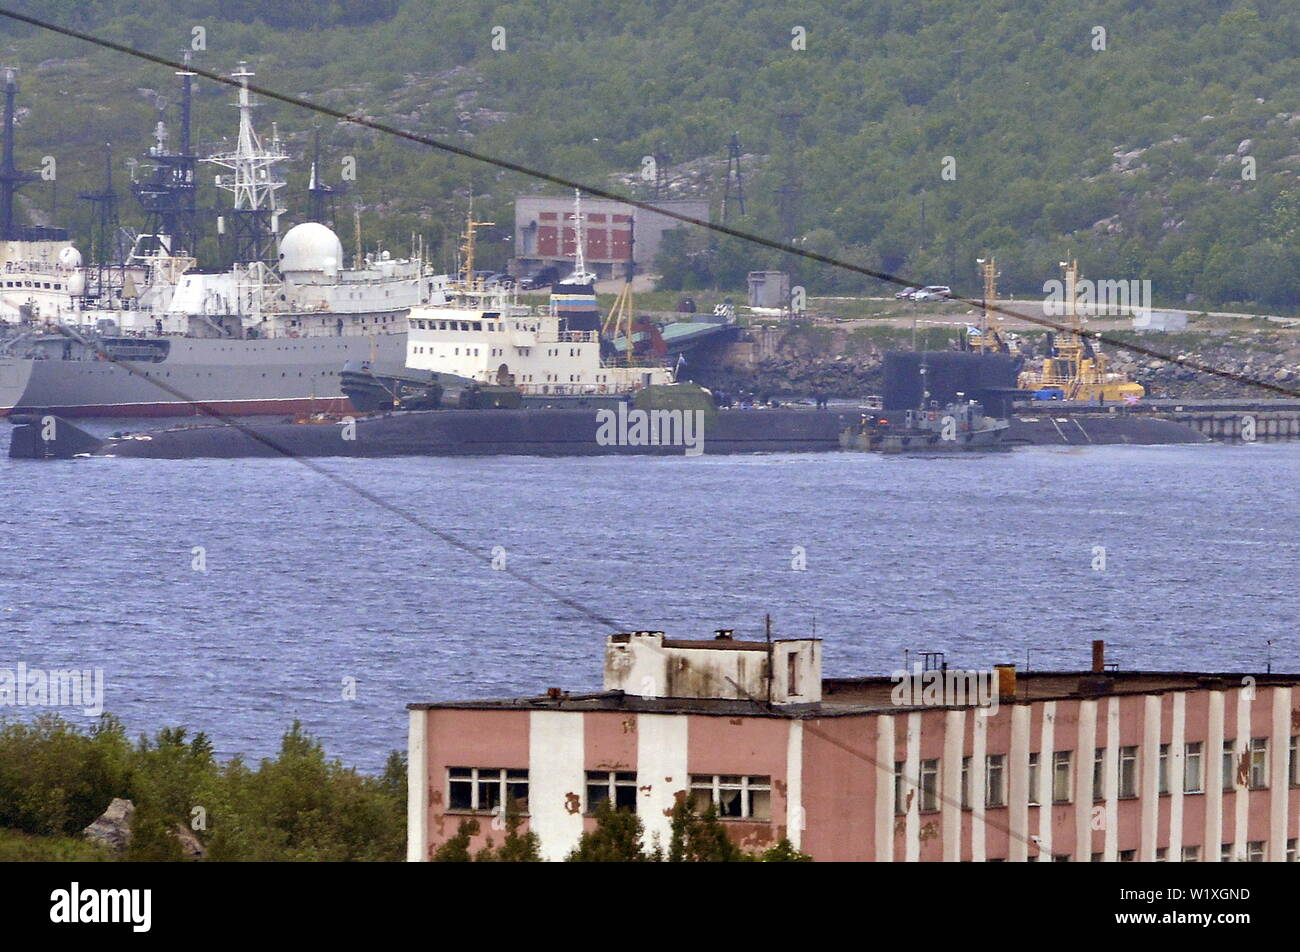 Severomorsk, Russia. 03rd July, 2019. ATTENTION EDITORS! IN PHOTOS TS0B1D06, TS0B1D07 DATED JULY 3, 2019 THE CAPTION INCORRECTLY NAMED THE SUBMARINE CORRECTED CAPTION FOLLOWS: SEVEROMORSK, RUSSIA - JULY 3, 2019: A rescue tugboat (back) and the BS-64 Podmoskovye ballistic missile submarine (front) carrying a nuclear deepwater station of Project 10831 at the Russian Northern Fleet's base. Lev Fedoseyev/TASS WE REGRET ANY INCONVENIENCE Credit: ITAR-TASS News Agency/Alamy Live News - Stock Image